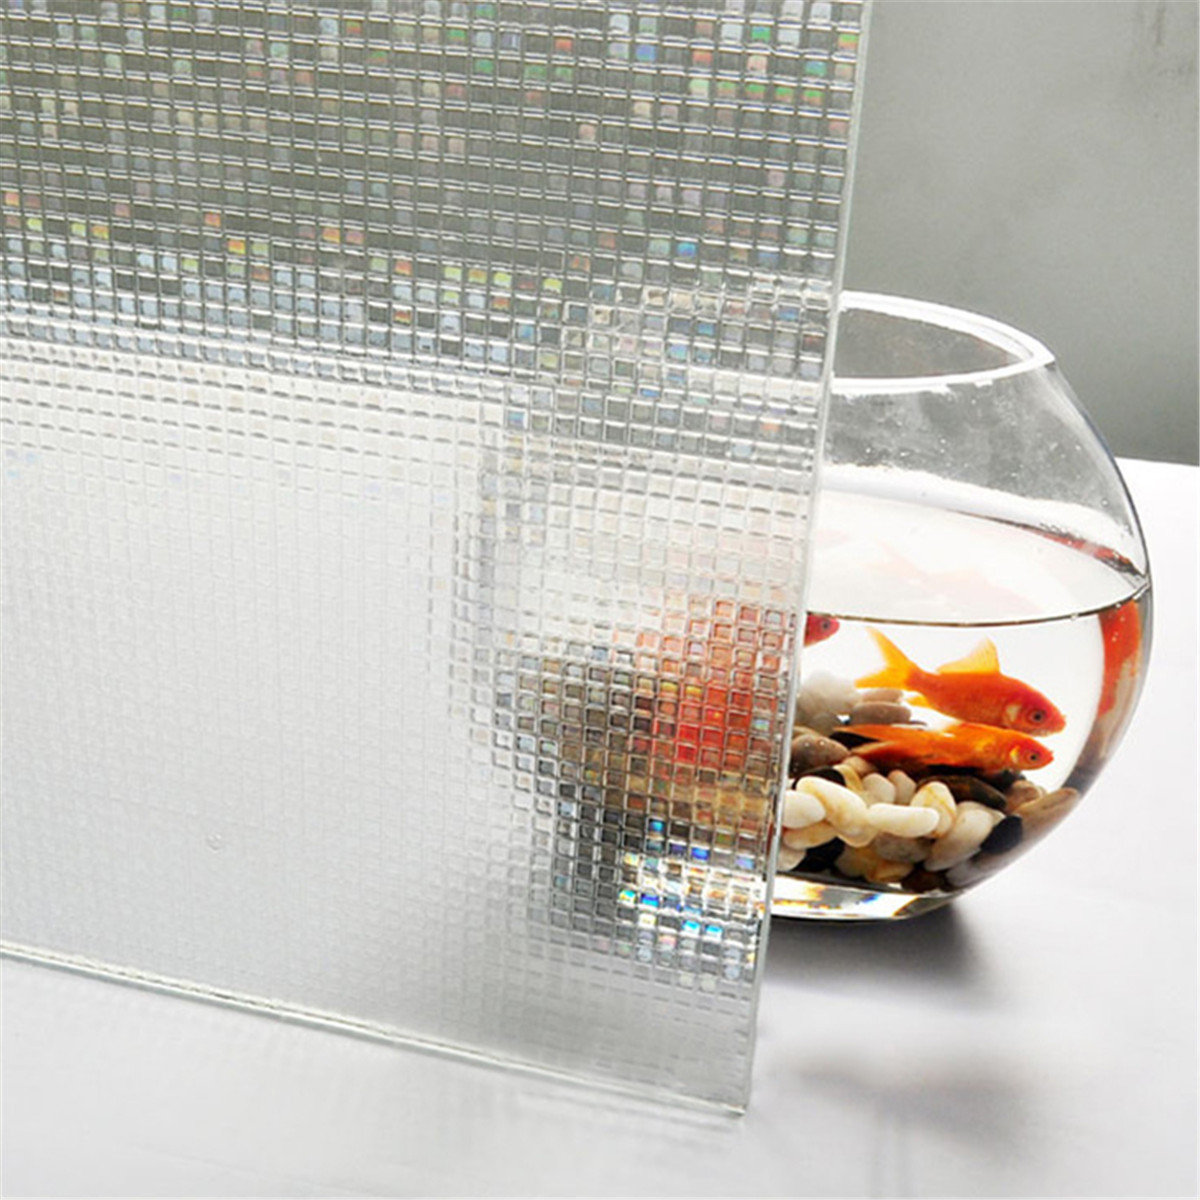 45 x 200cm 3D Static Removable Translucent Window Glass Film Sticker Decor